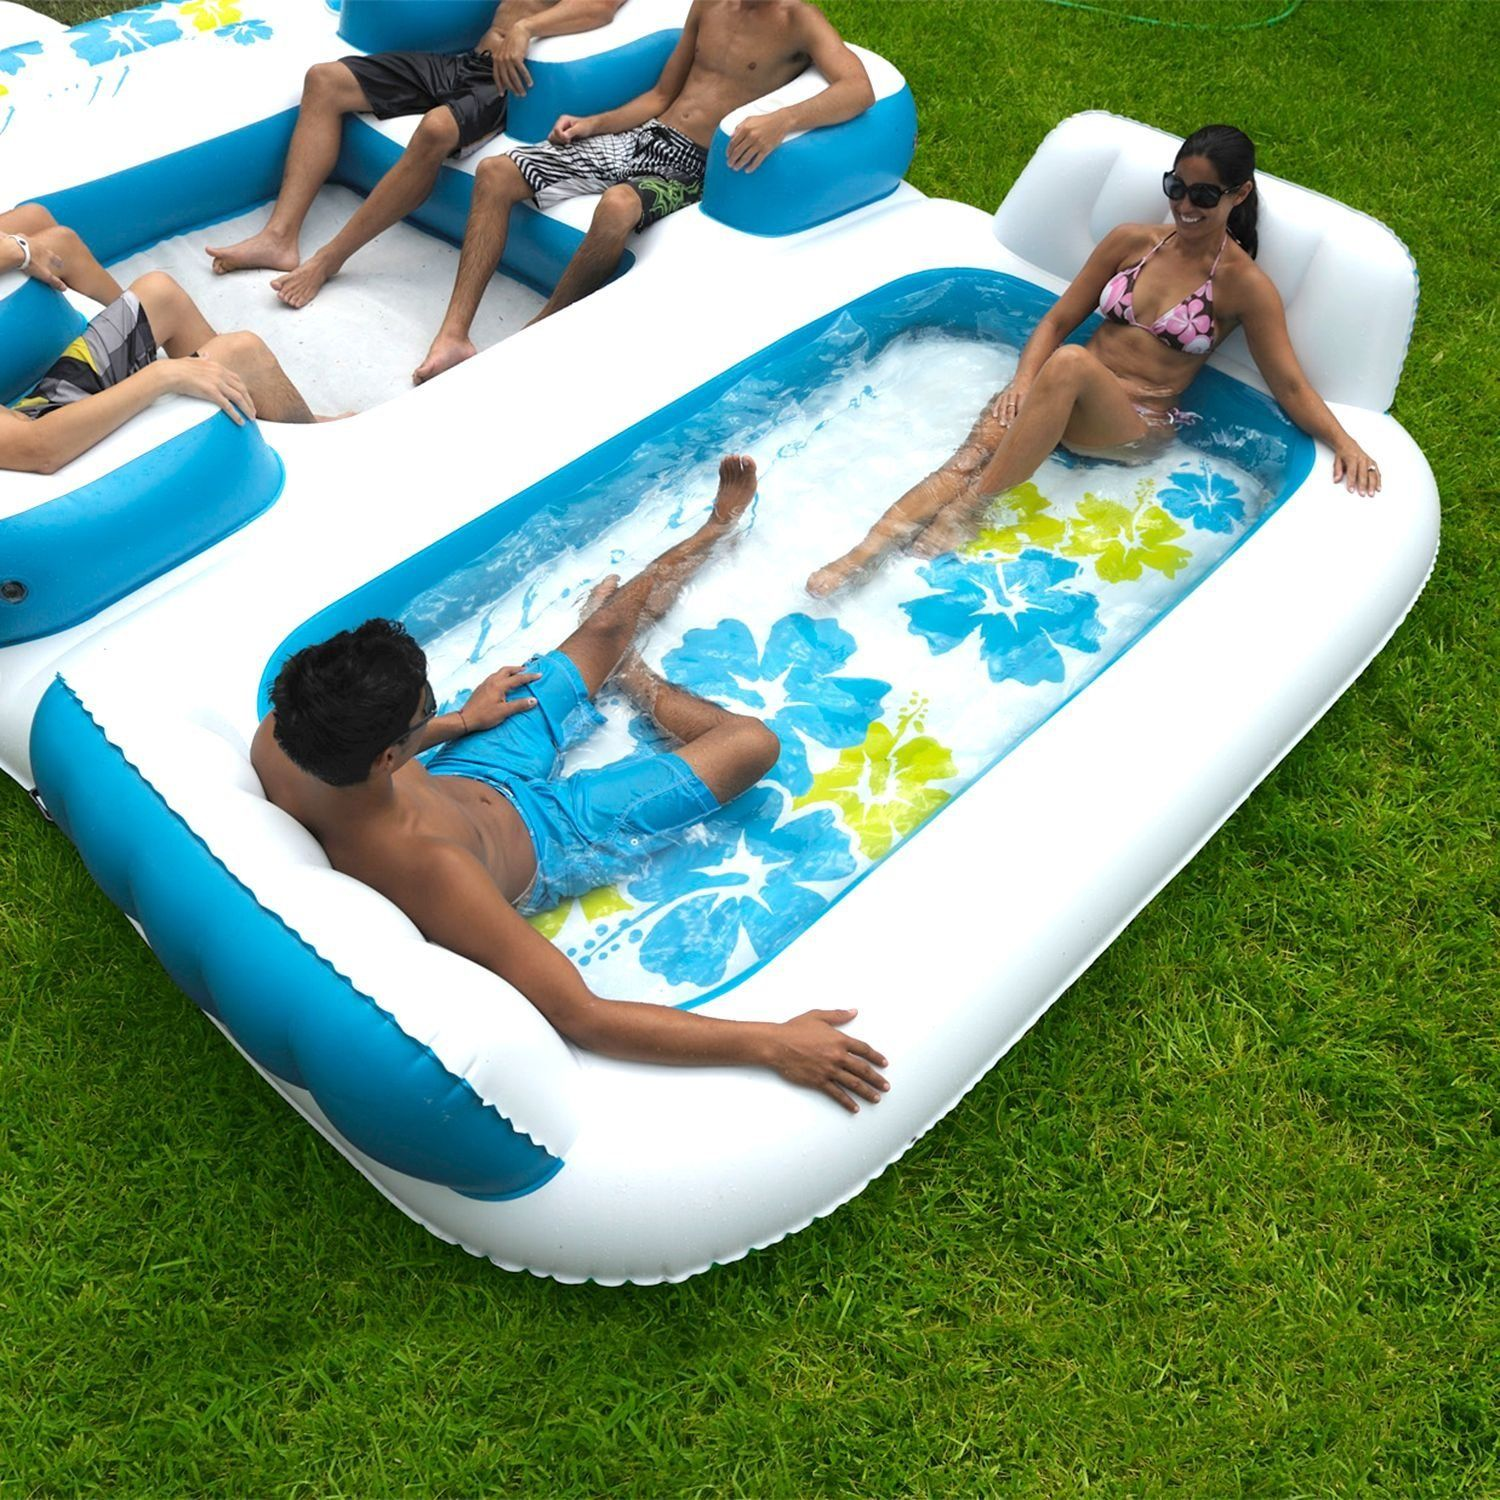 New Giant Inflatable Floating Island 6 Person Raft Pool Lake Float 15 8x 9 4 Sports